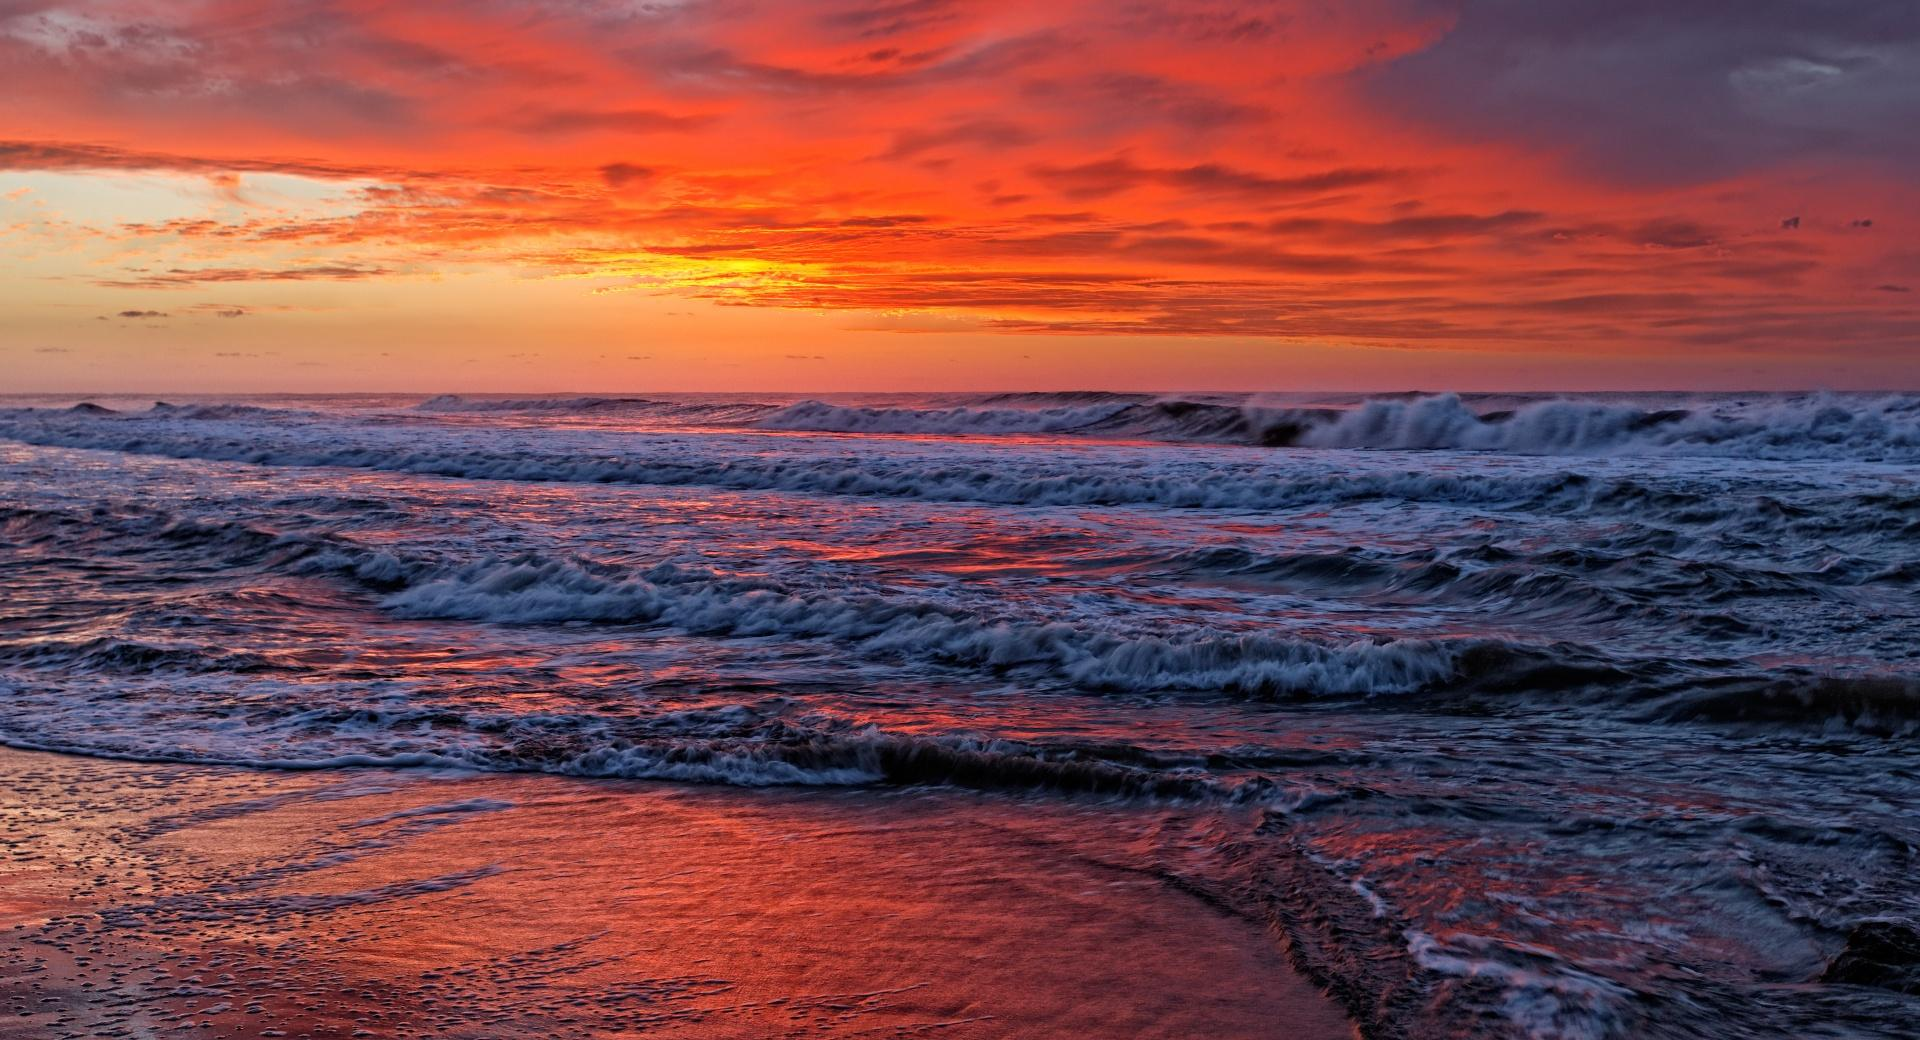 Red Sunset Sky wallpapers HD quality